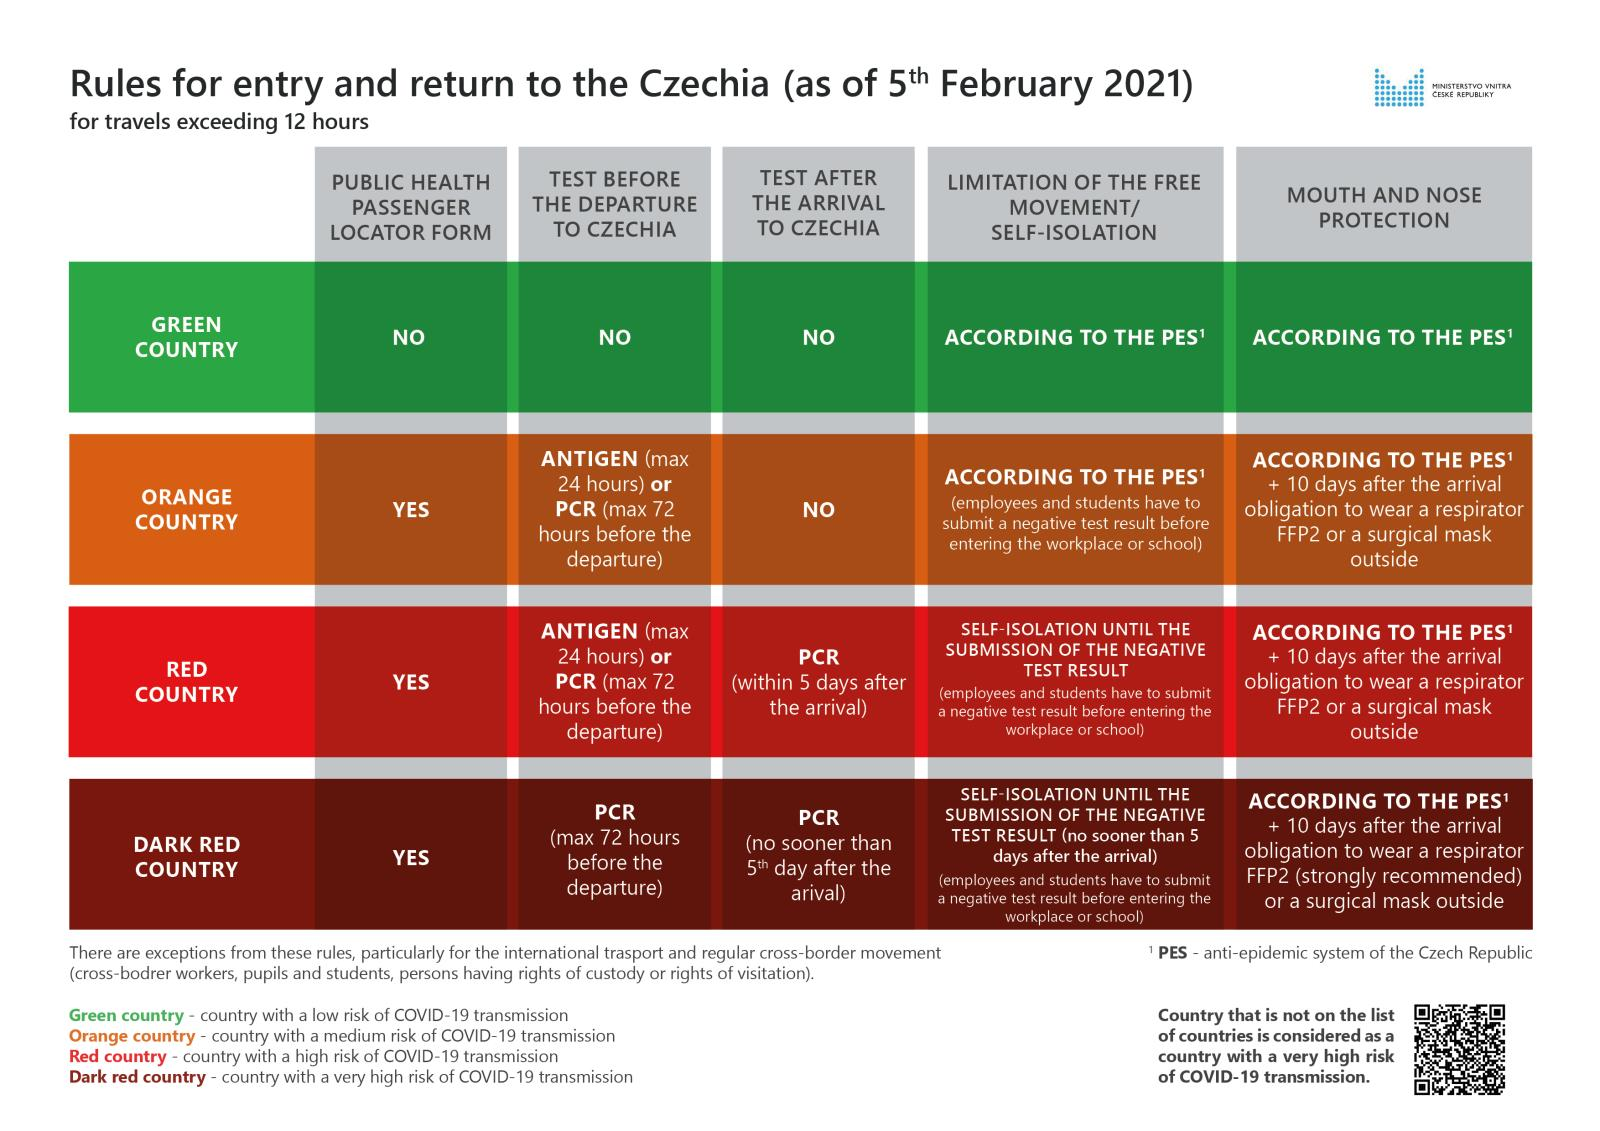 Rules for entry or return to the Czechia (as of Feb 5, 2021)